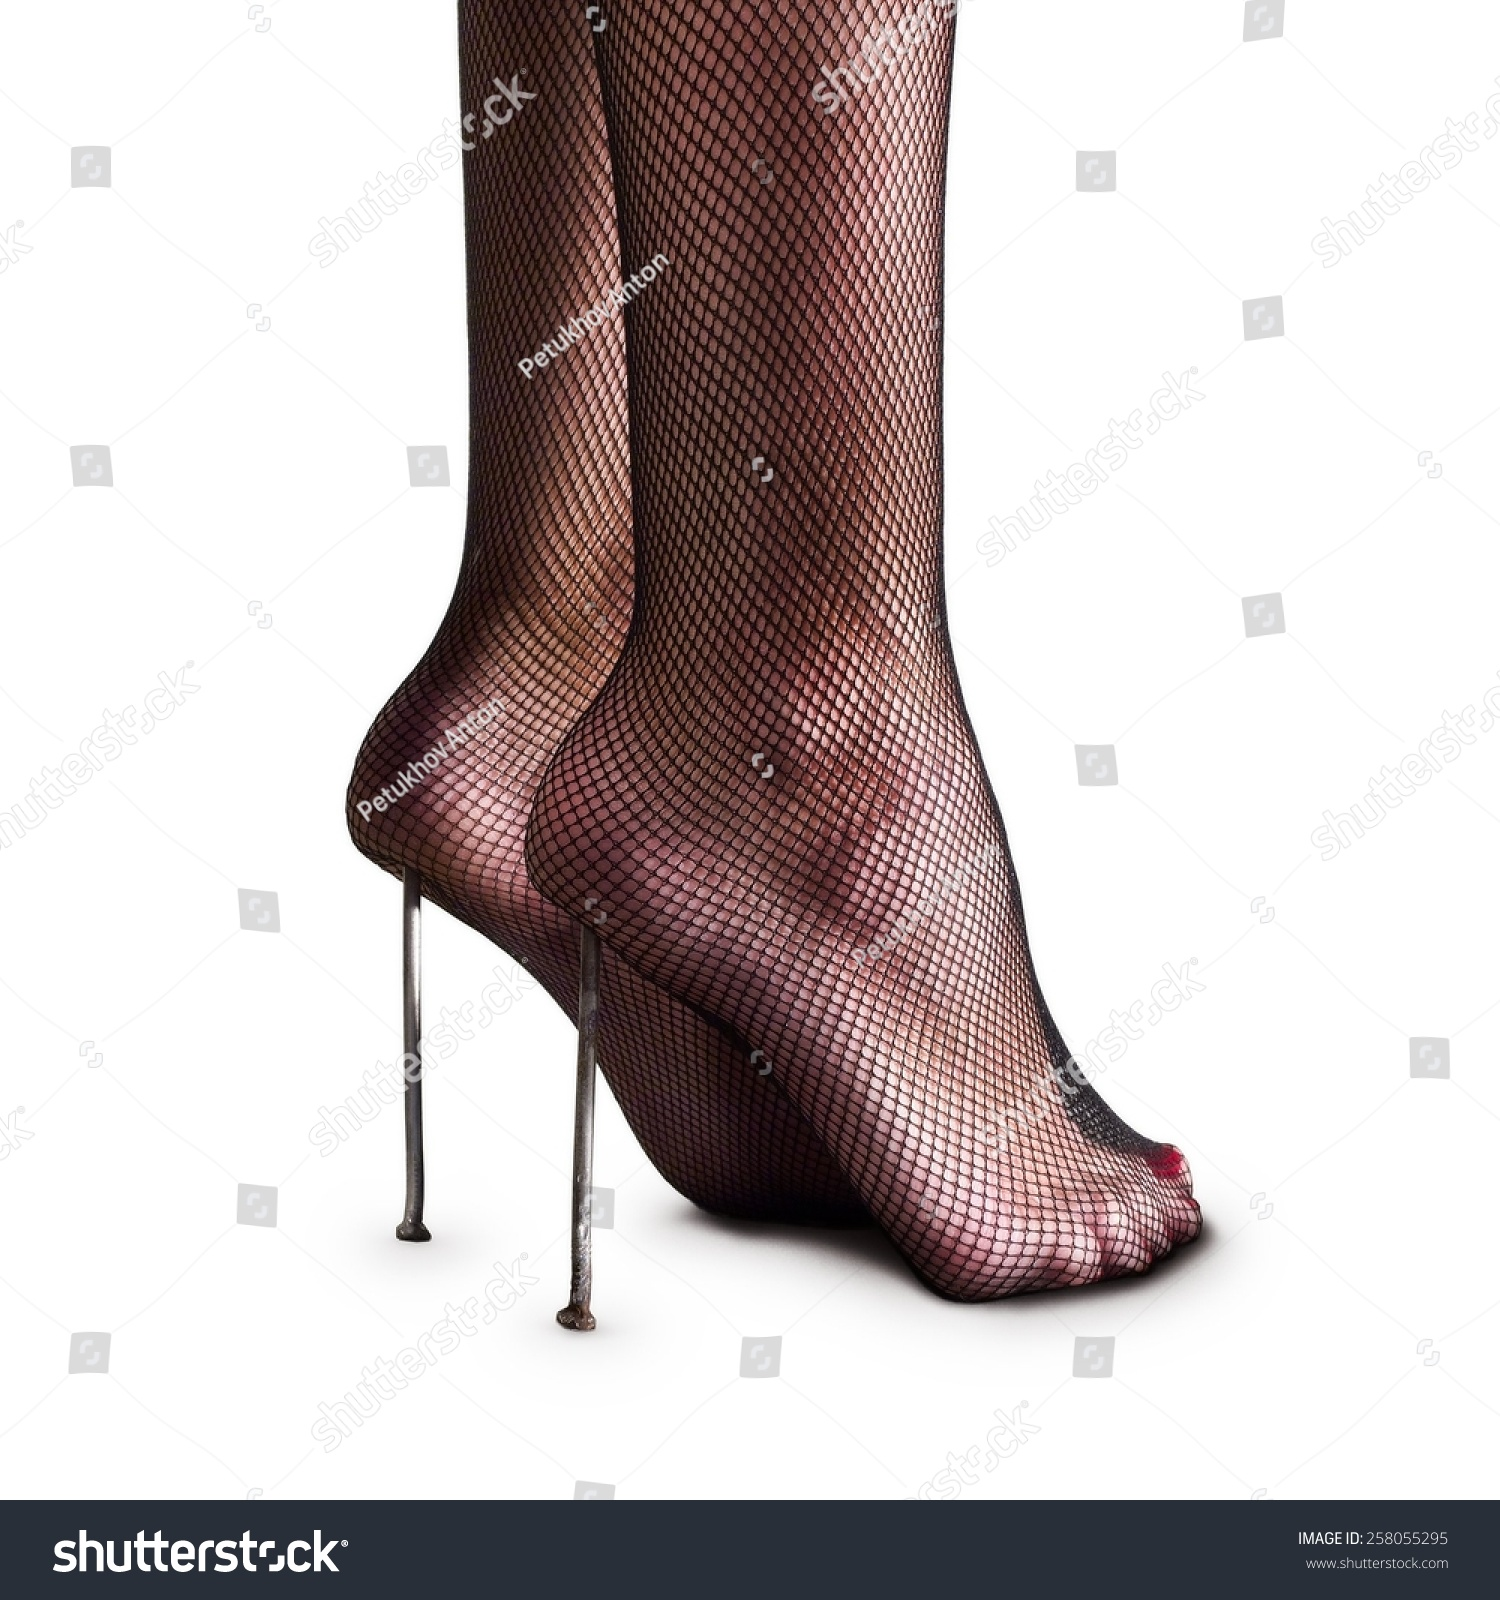 Closeup Two Long Nails Under Heels Stock Photo (100% Legal ...